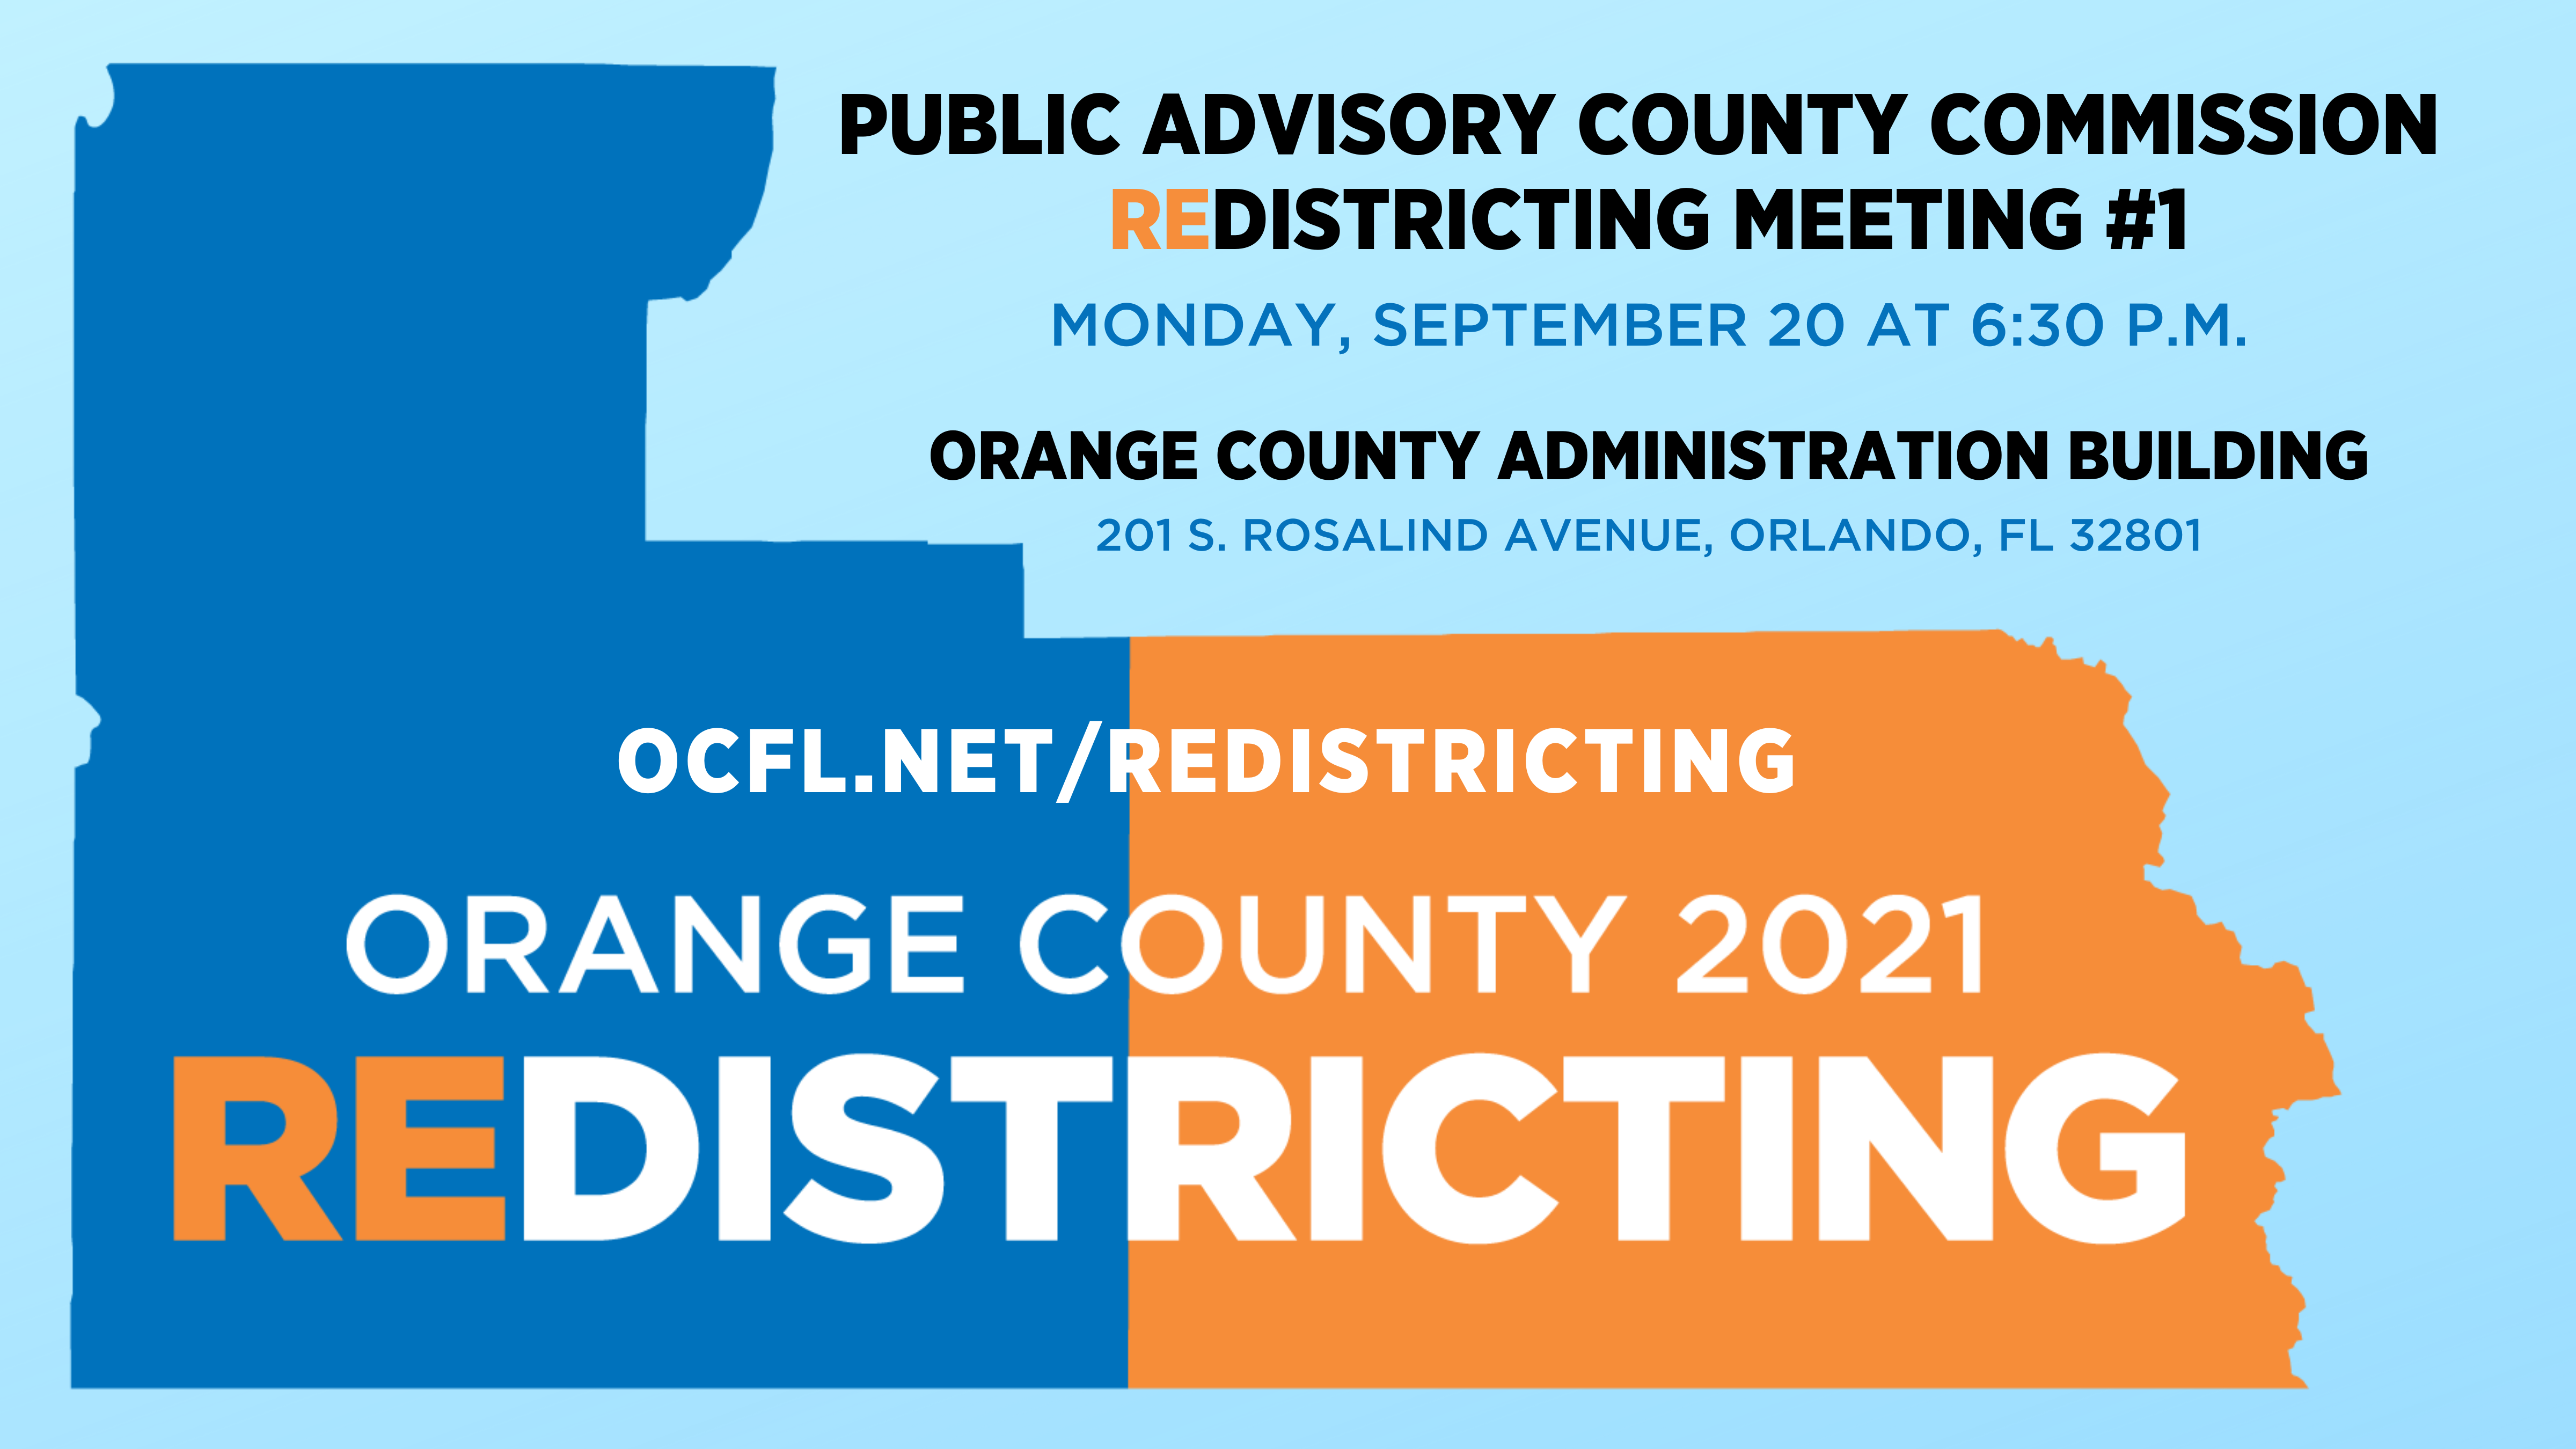 Public Advisory County Commission Redistricting Meeting 1 - September 20 at 6 30 PM - Orange County Administration Building - 201 S Rosalind Avenue Orlando FL 32801